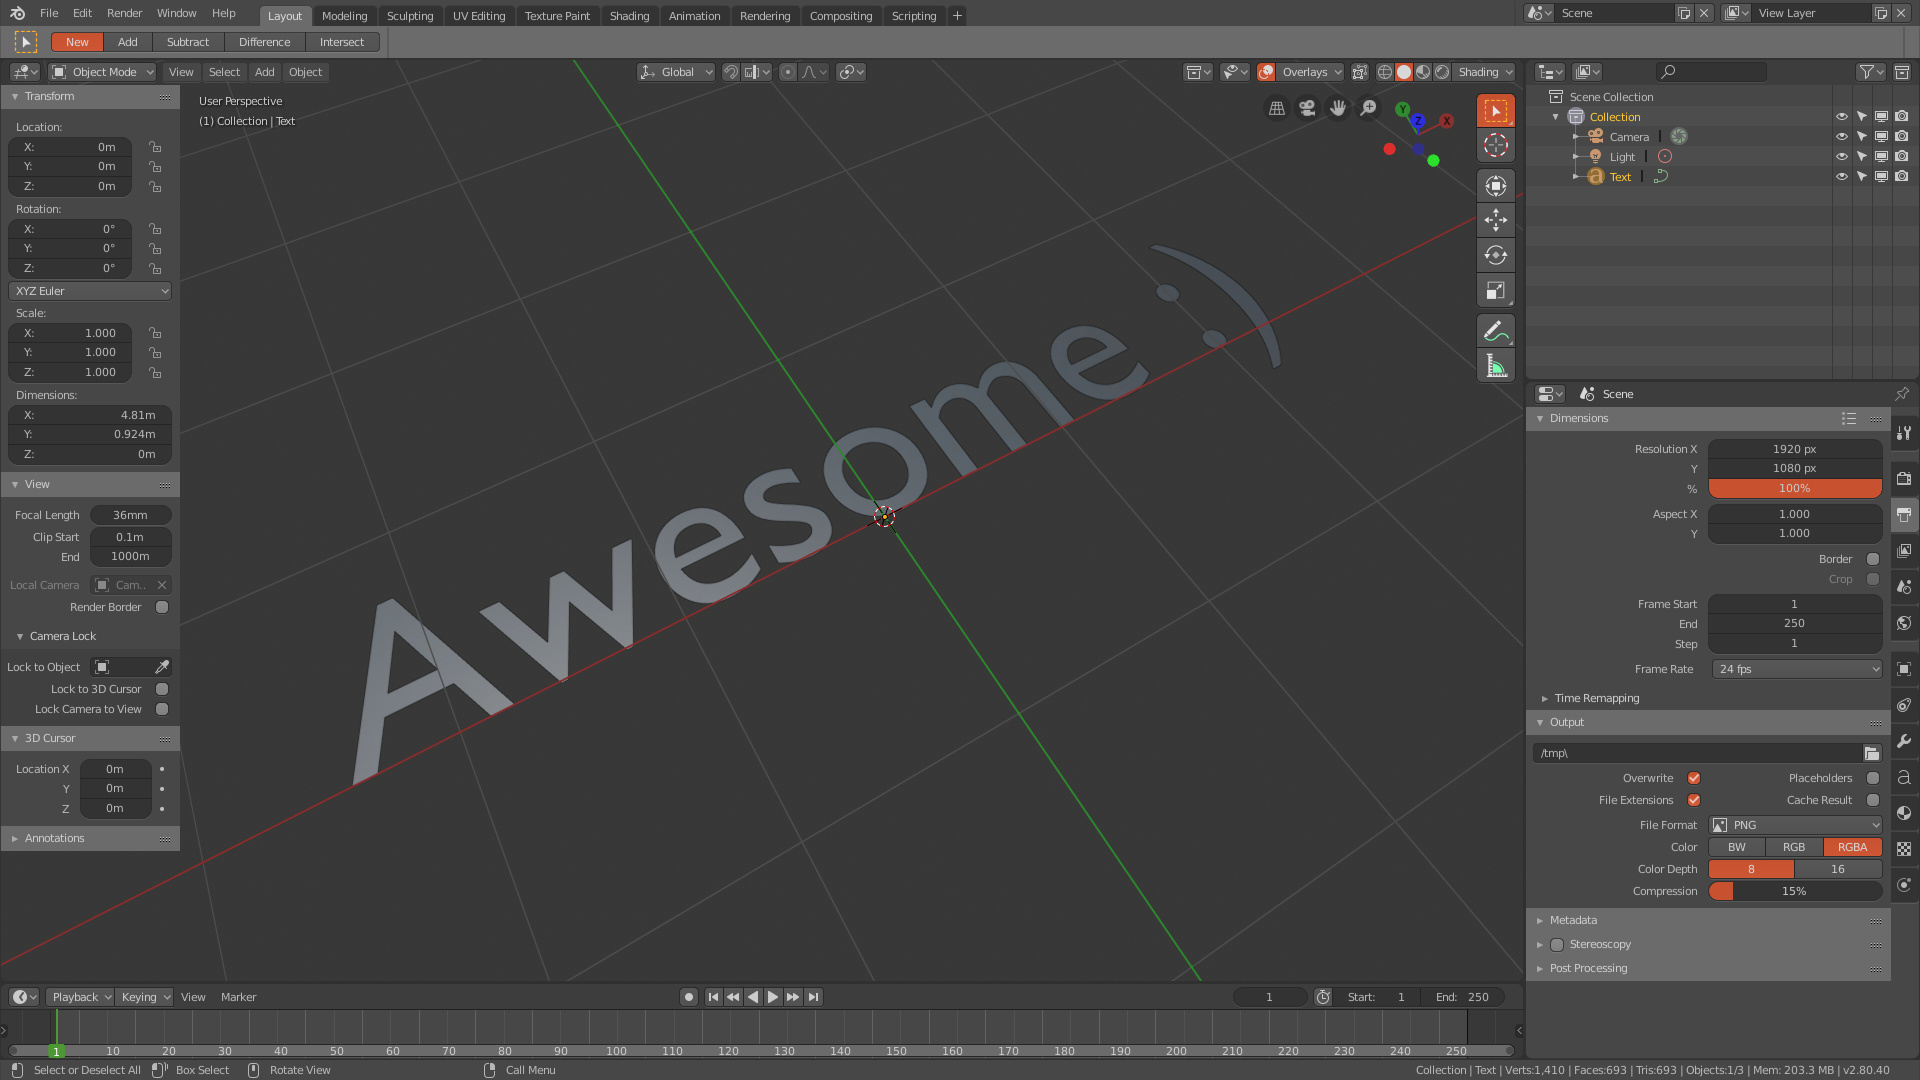 Awesome - Theme for Blender 2 8 - Released Scripts and